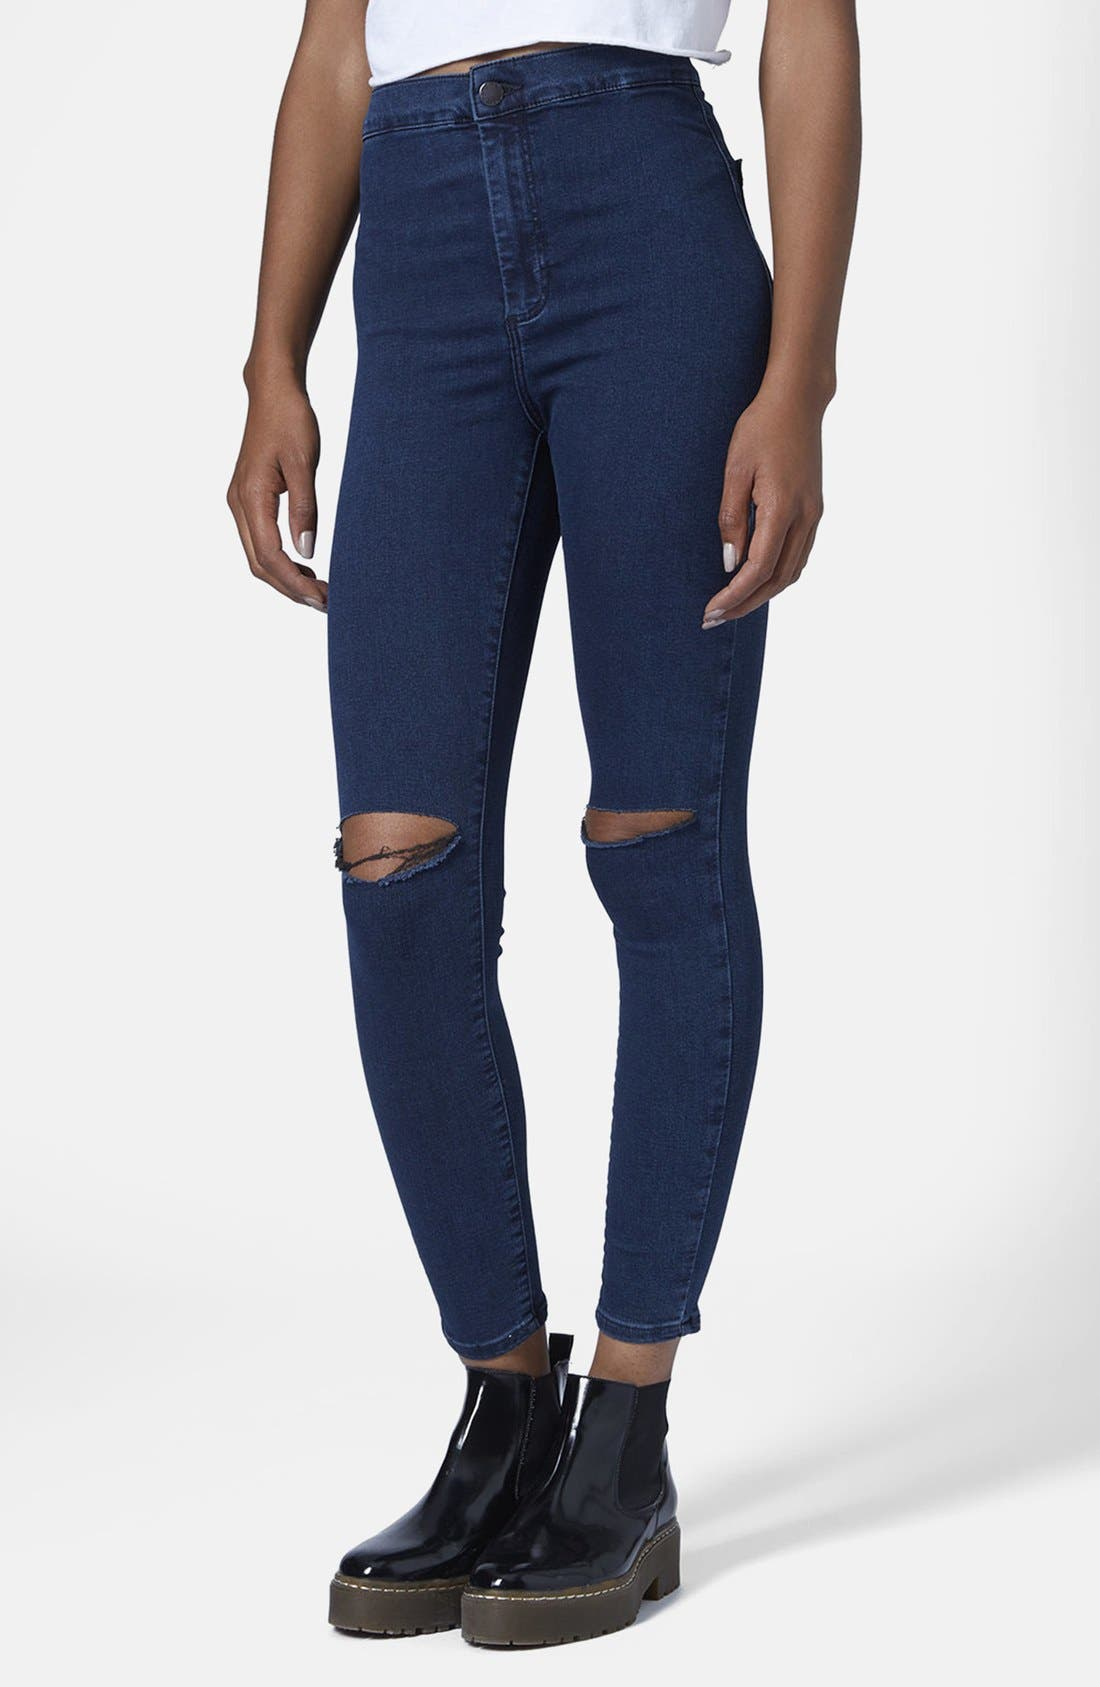 Alternate Image 1 Selected - Topshop Moto 'Joni' Ripped High Rise Skinny Jeans (Blue) (Petite)